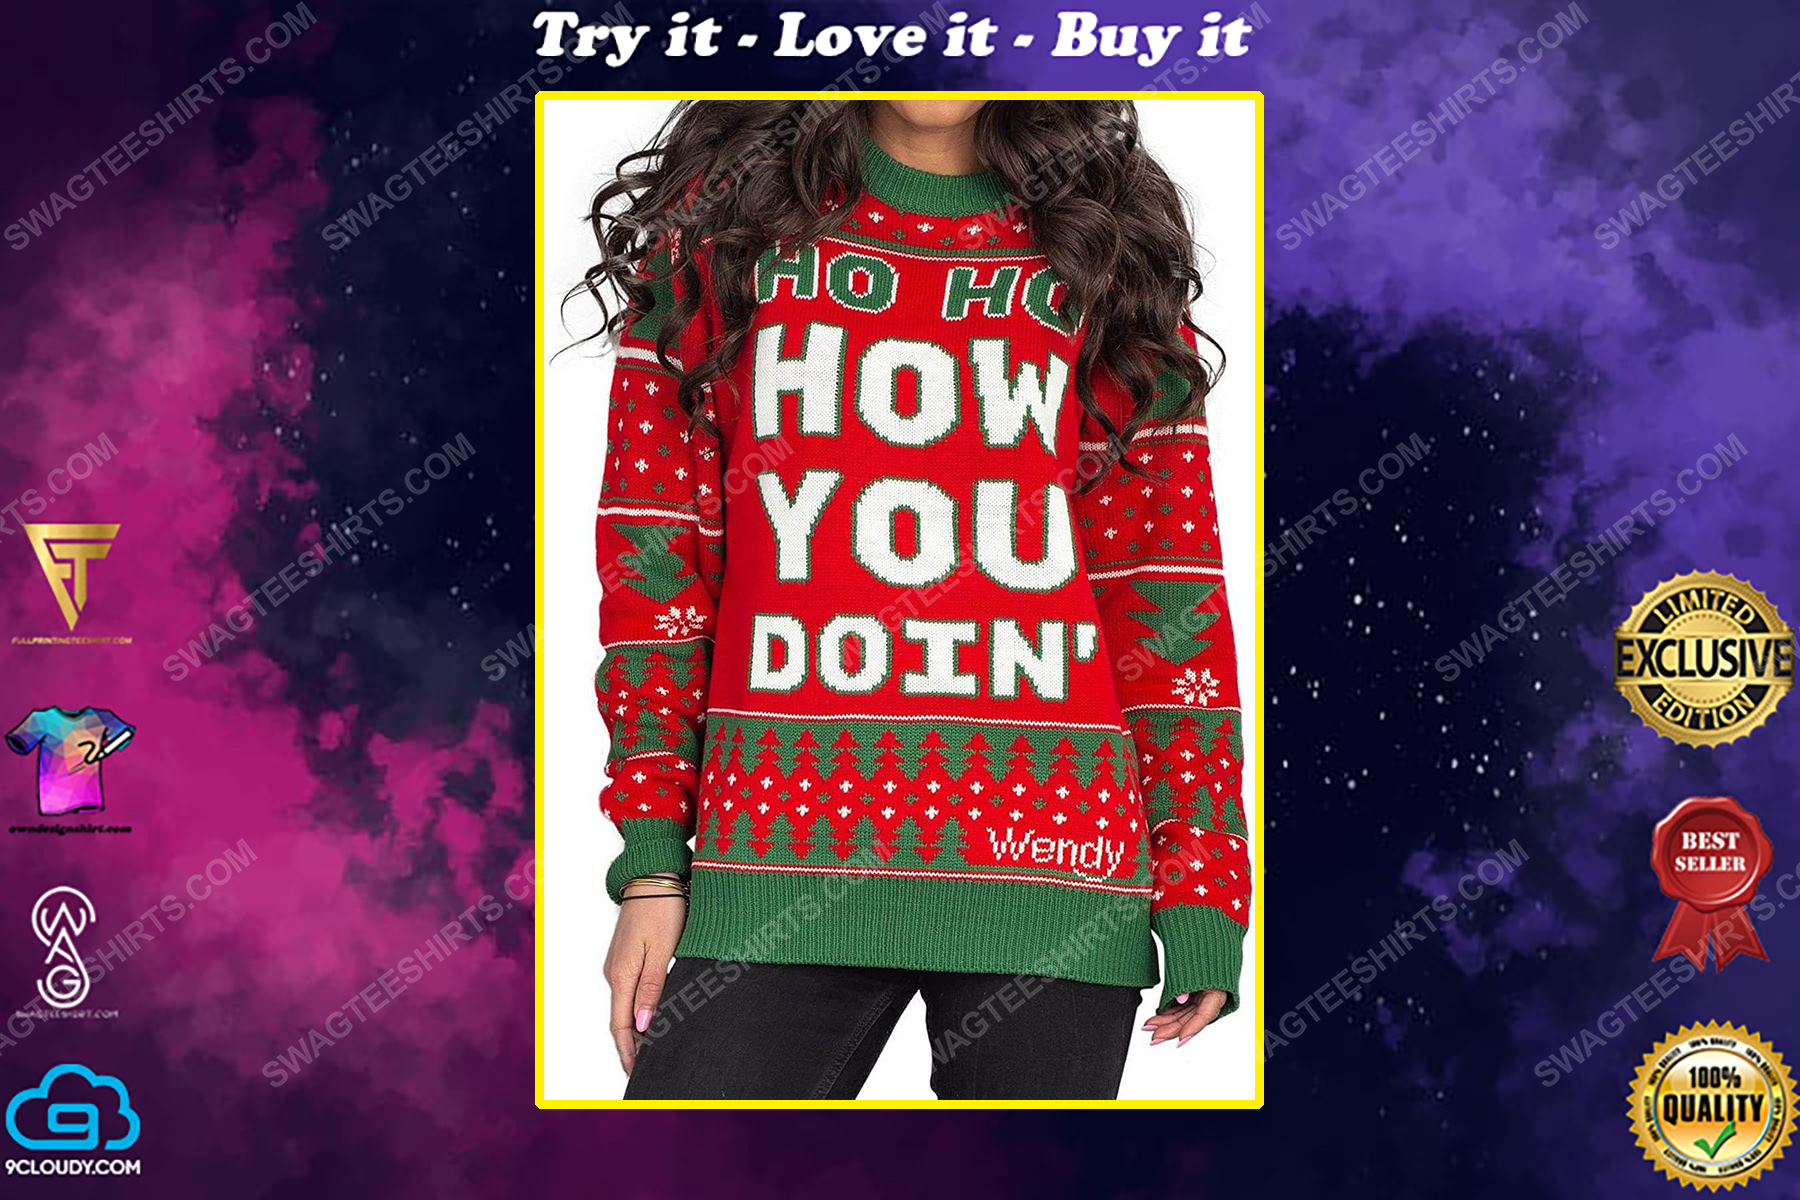 Wendy williams red ho ho how you doin' full print ugly christmas sweater